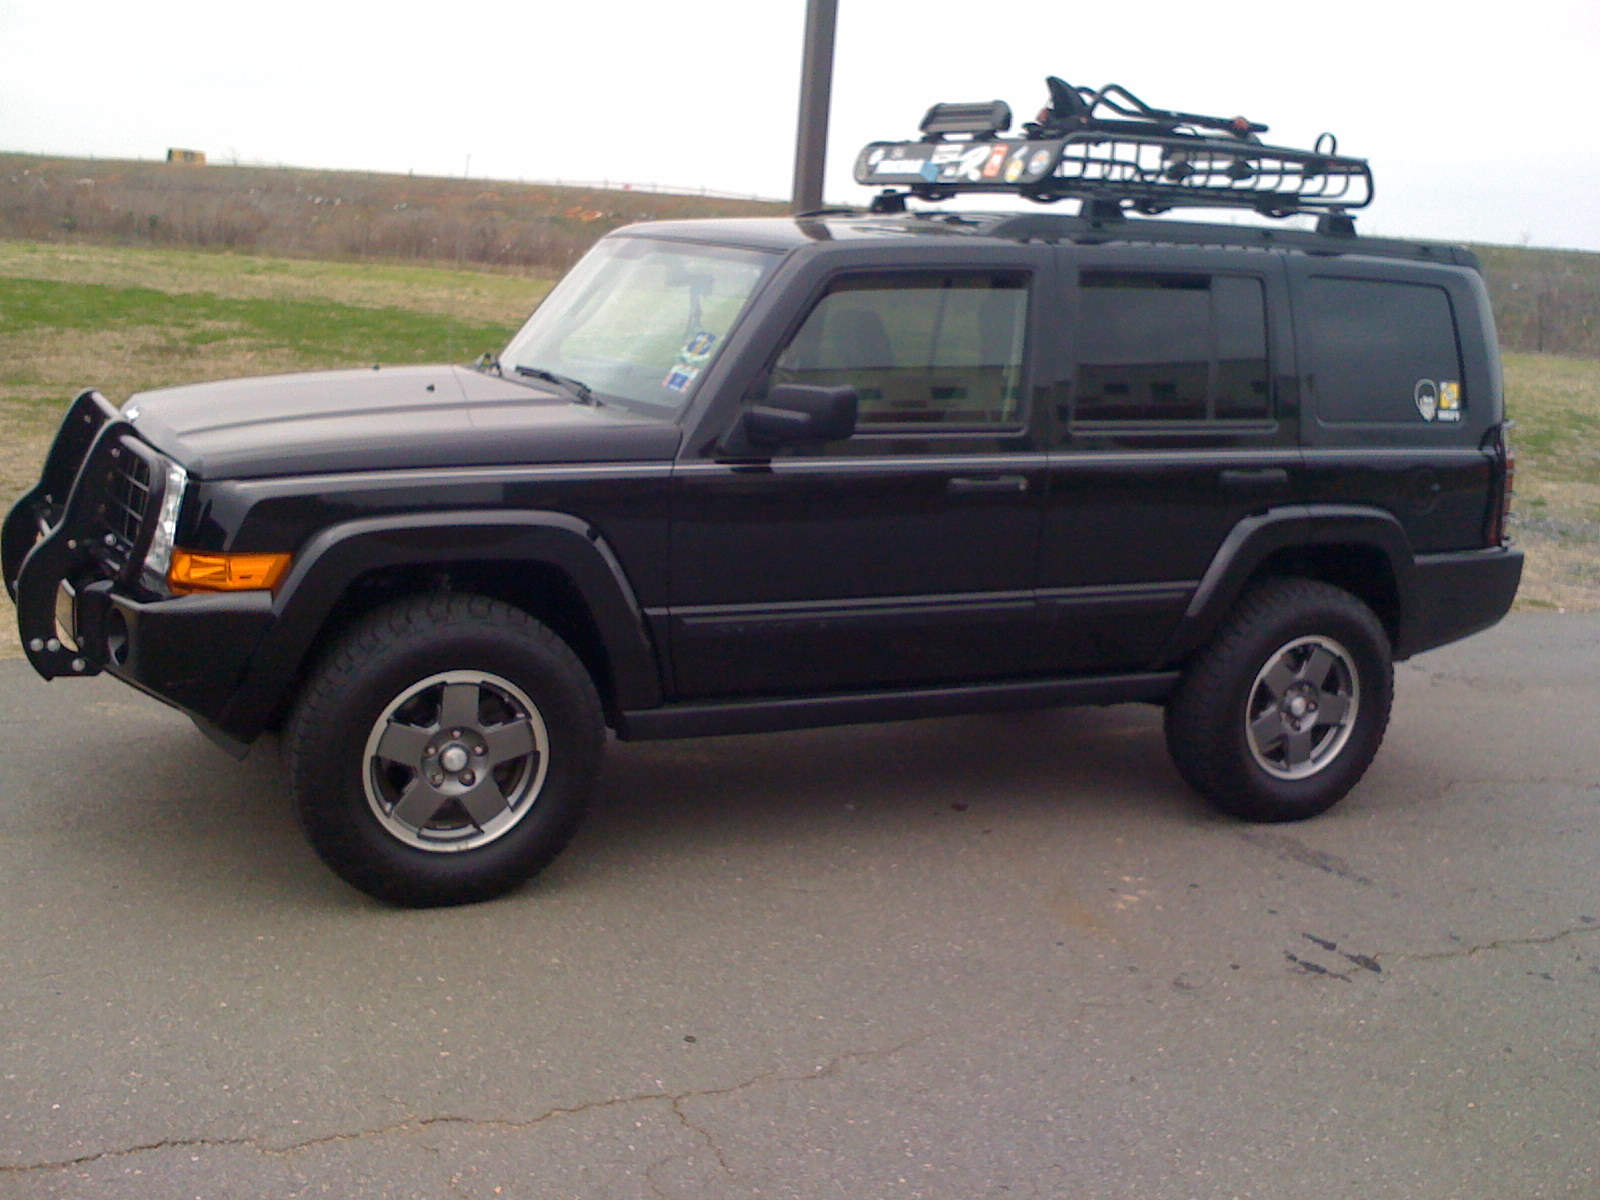 DirtyC-130 2006 Jeep Commander Specs, Photos, Modification ...